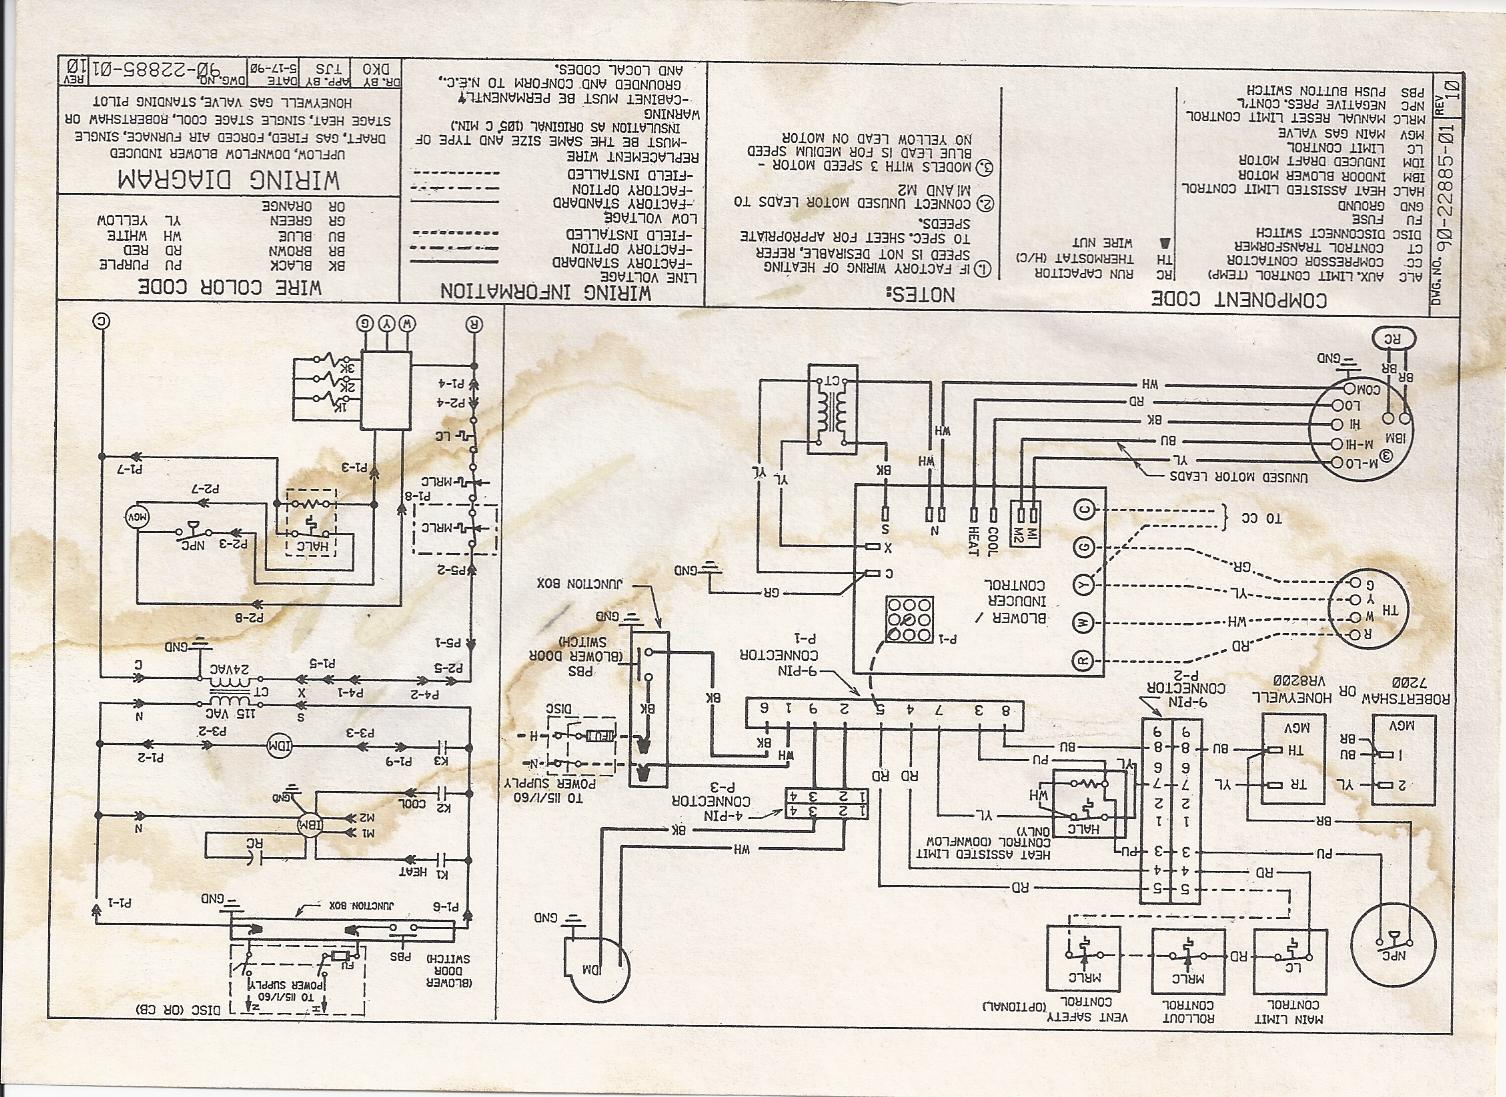 Ruud Thermostat Wiring Diagram Libraries 10 4 Electrical Wire Free Diagrams For Unlimited Access To Information U2022ruud 80 Furnace Control